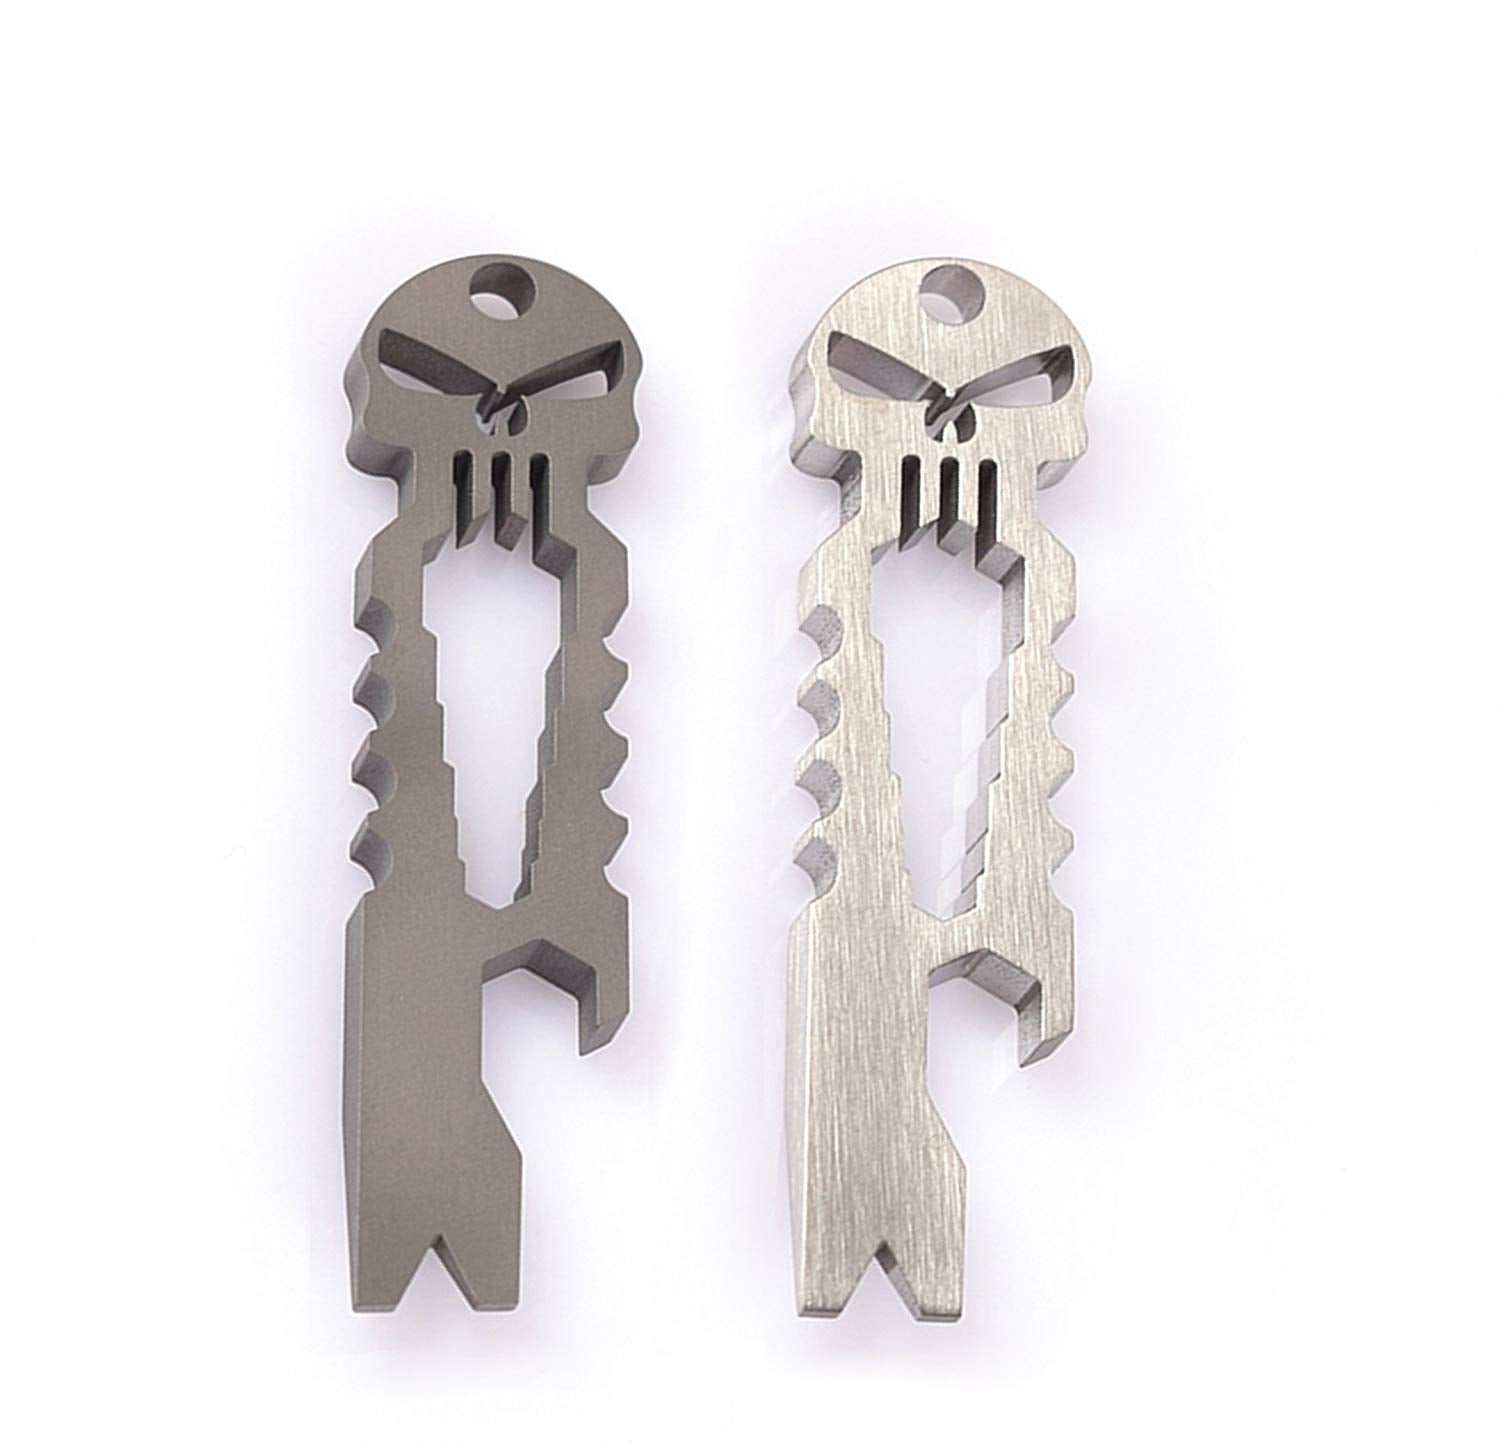 JJMG Pocket Skull Screwdriver (Set of 2)